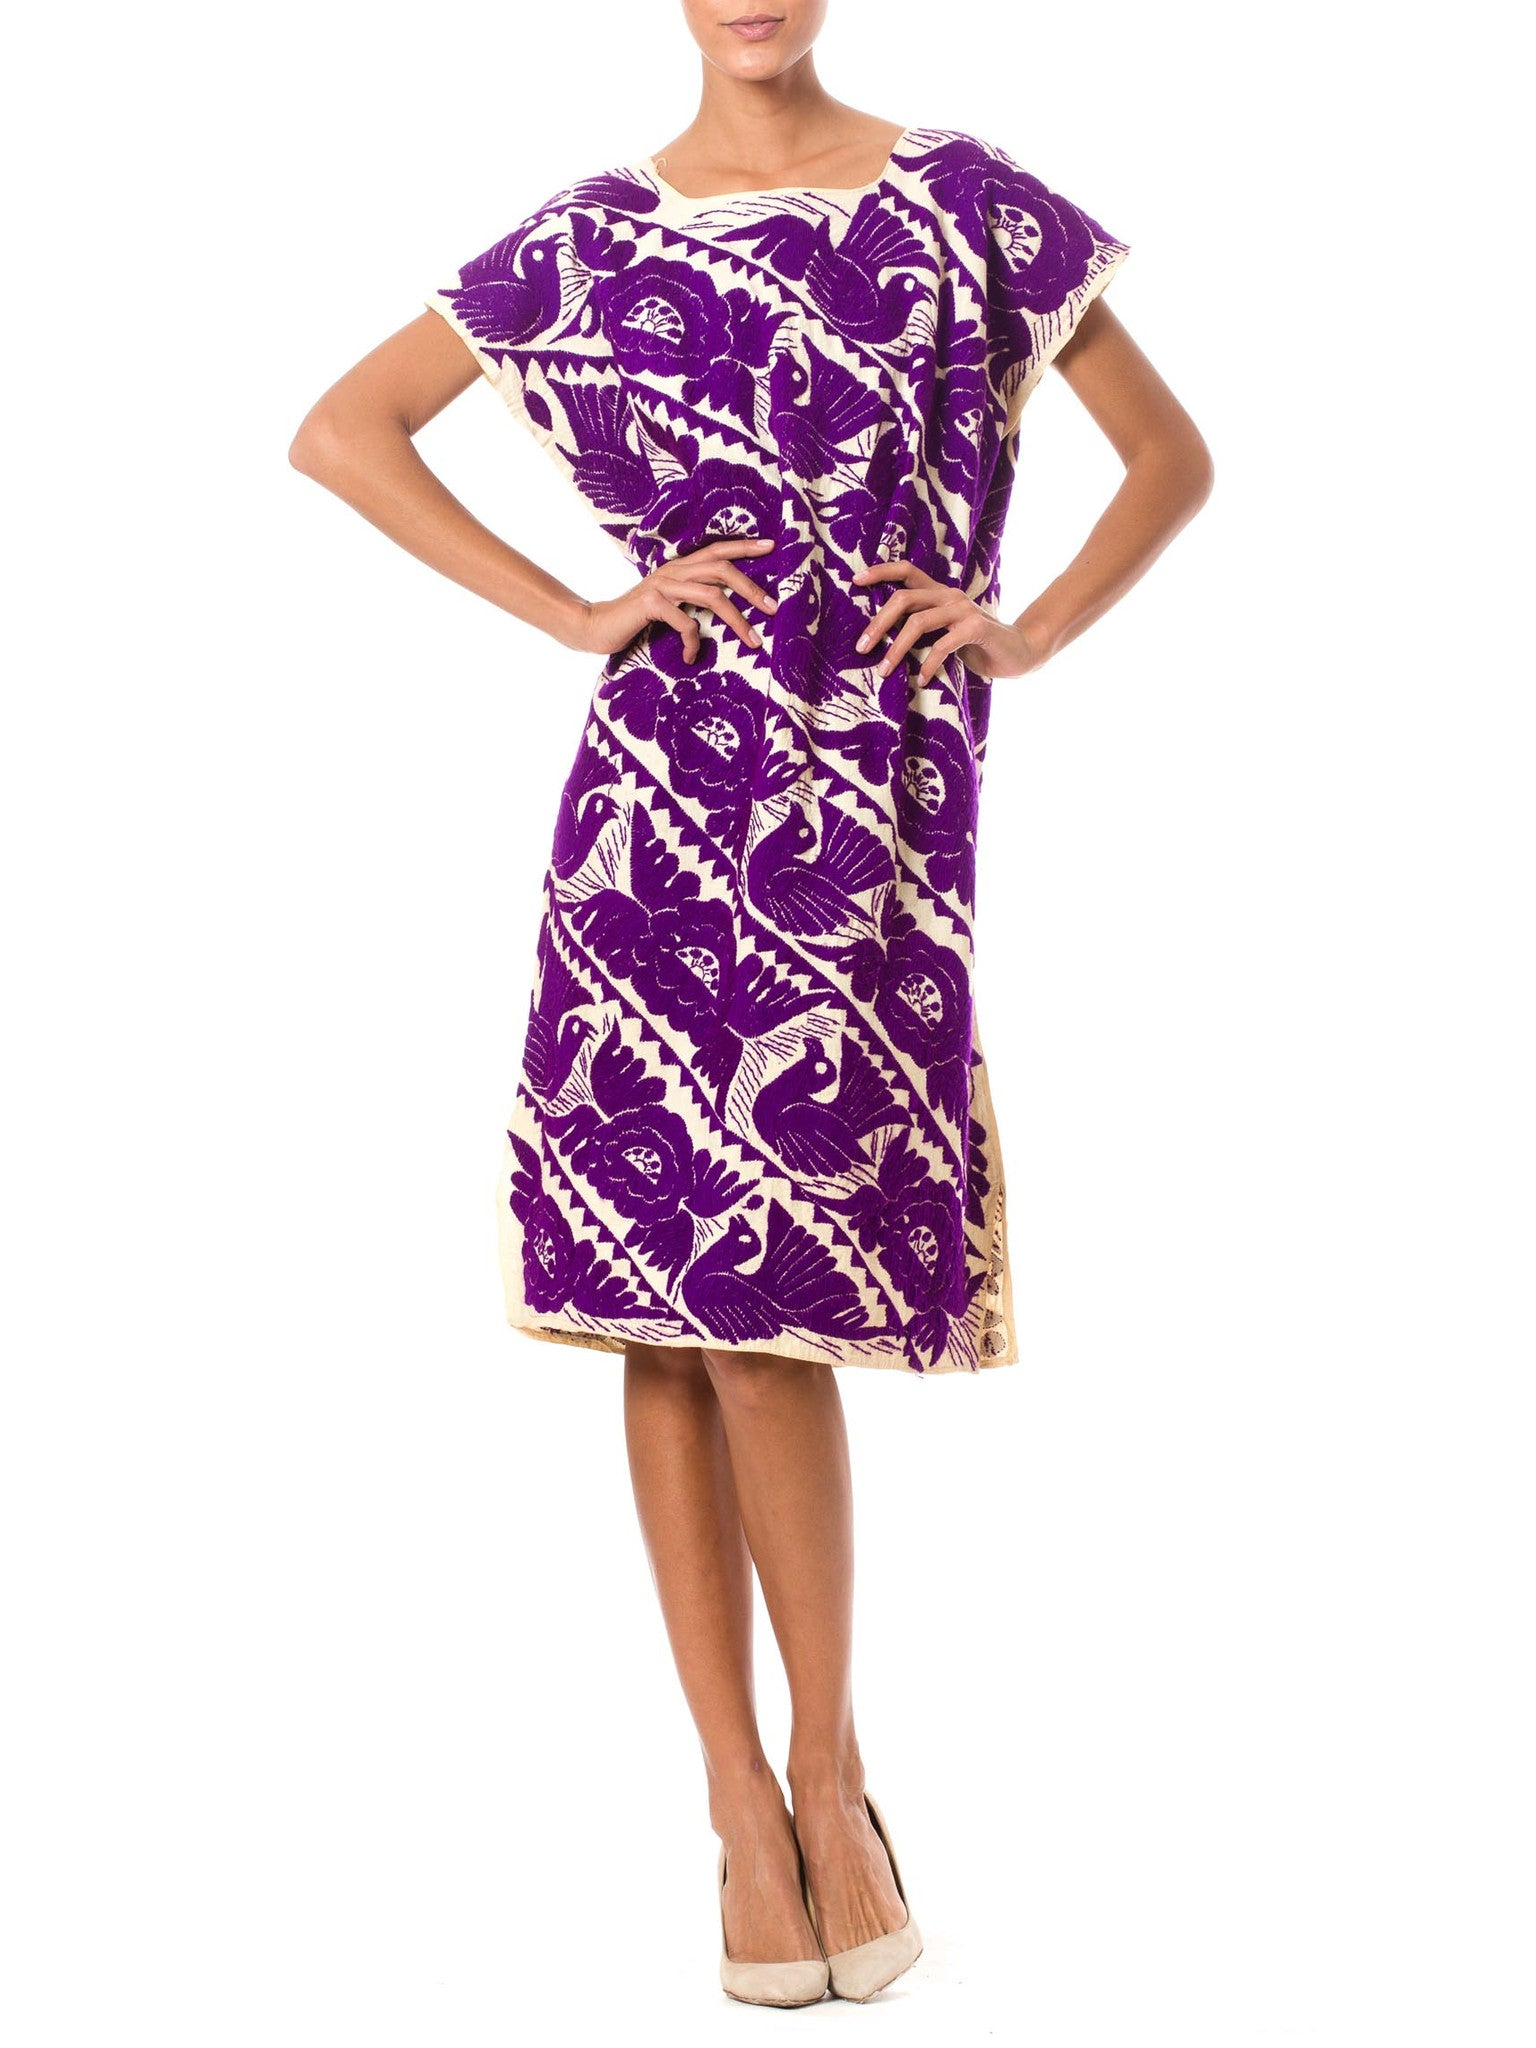 1960's Sheath Dress with Purple Bird Embroidery